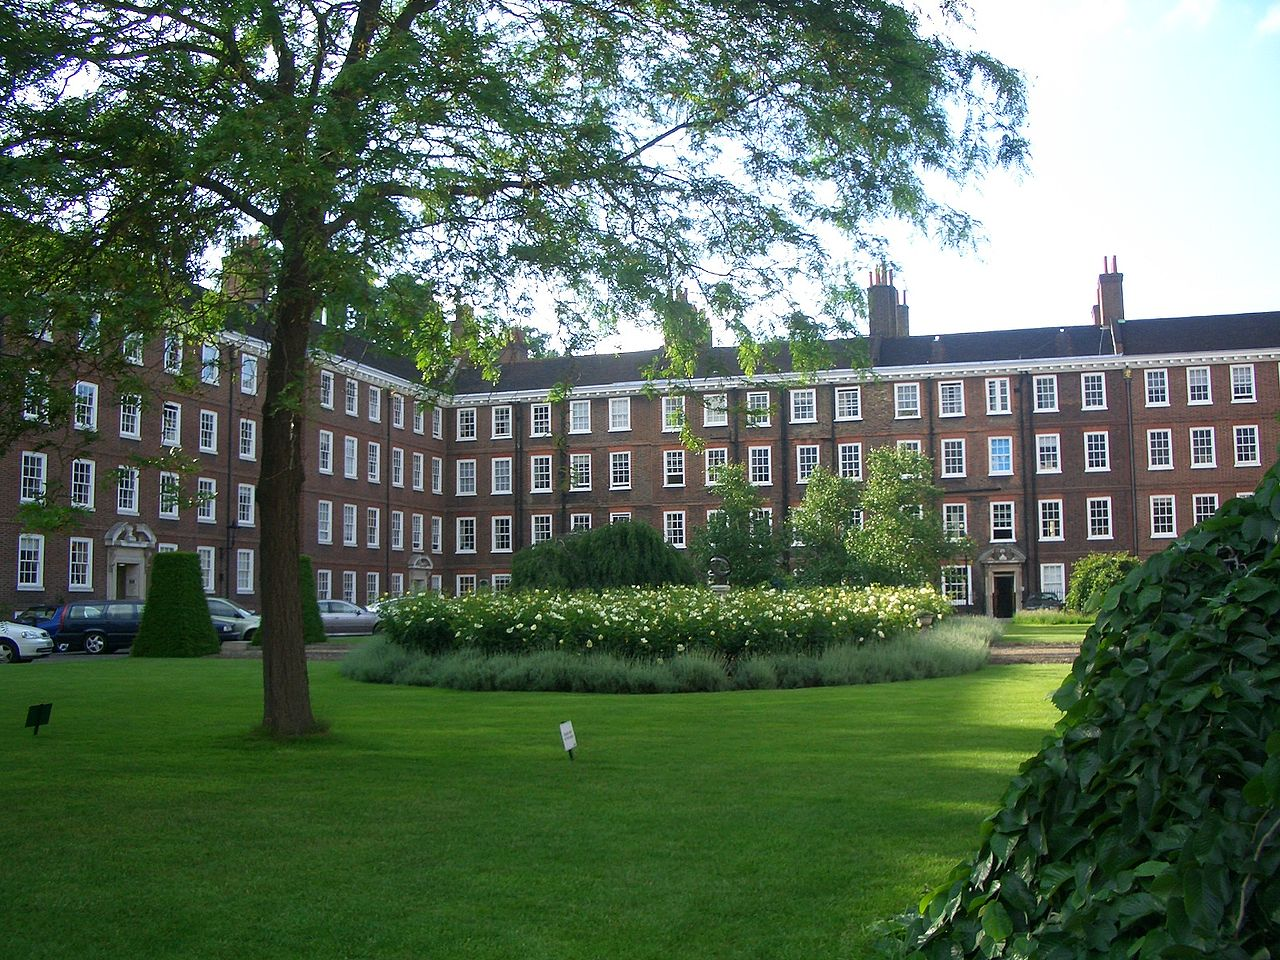 A grassy foreground, with a tall tree and shrubs, with a terrace of red brick buildings in the background and left side